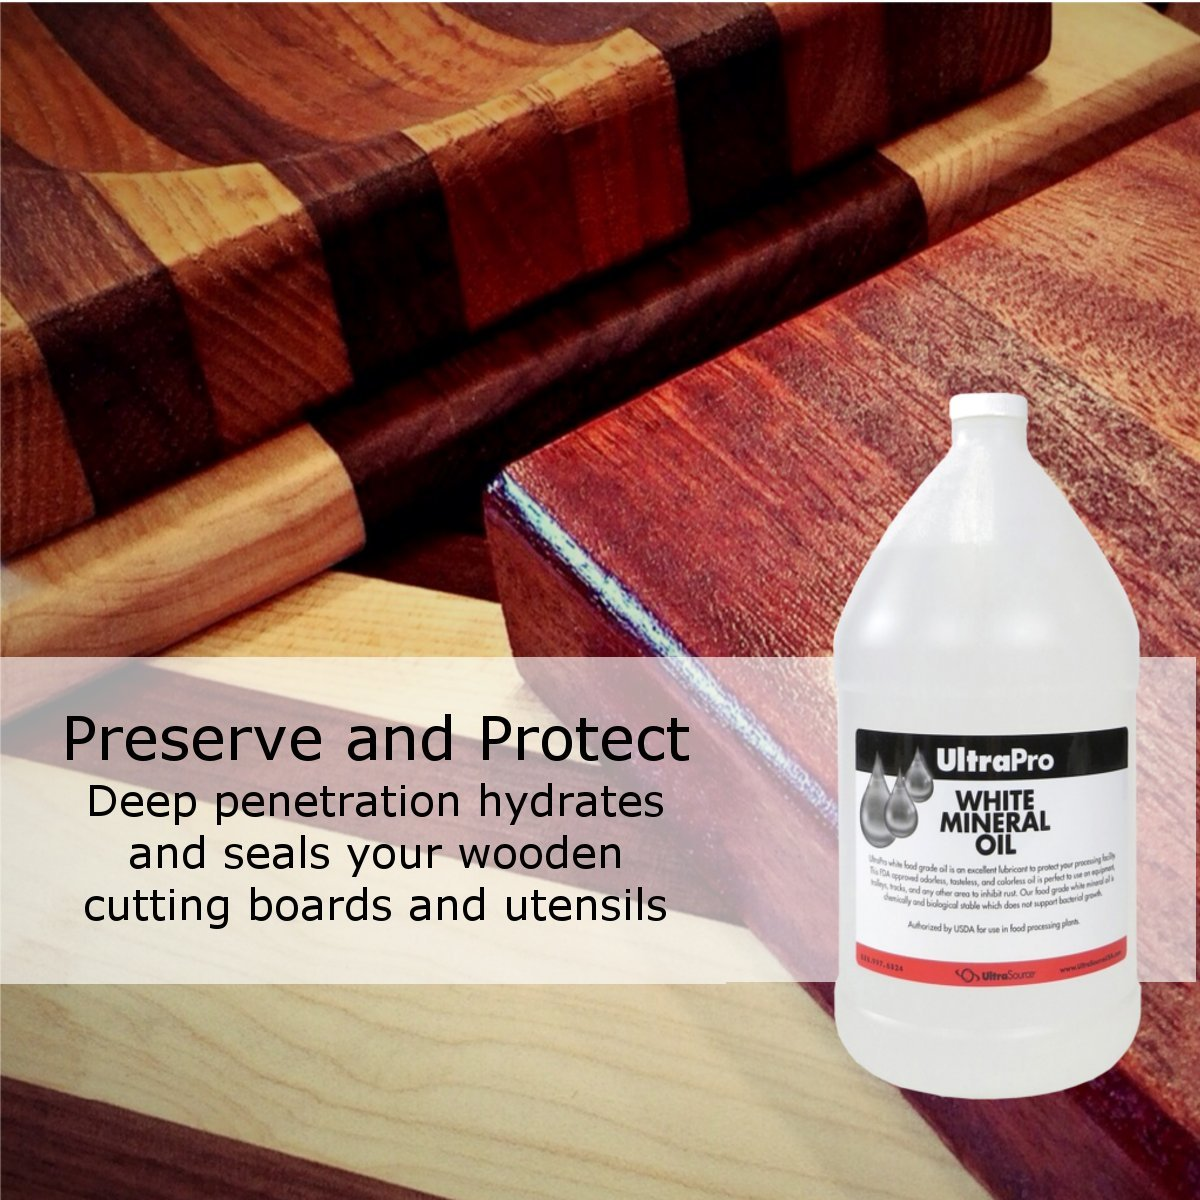 Food Grade Mineral Oil, 1 Gallon (128oz), for Cutting Boards and Butcher Blocks, Stainless Steel and More, NSF Approved by UltraSource (Image #3)